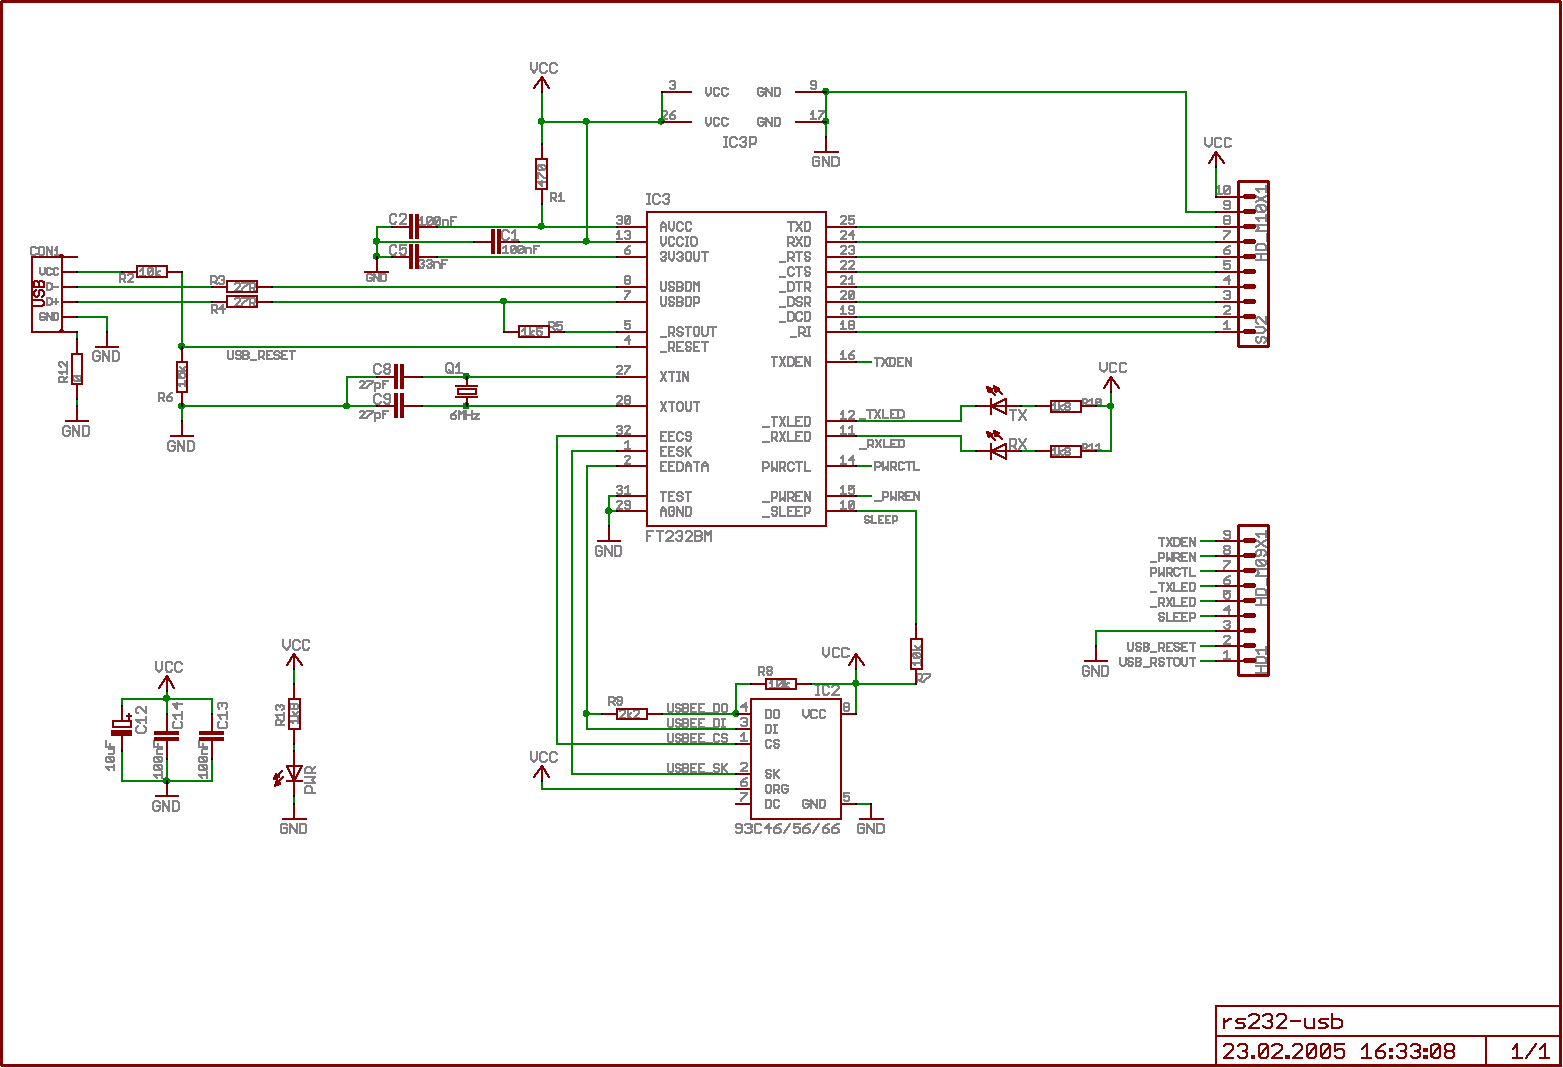 Ide To Usb Cable Wiring Diagram | Wiring Diagram - Ide To Usb Wiring Diagram